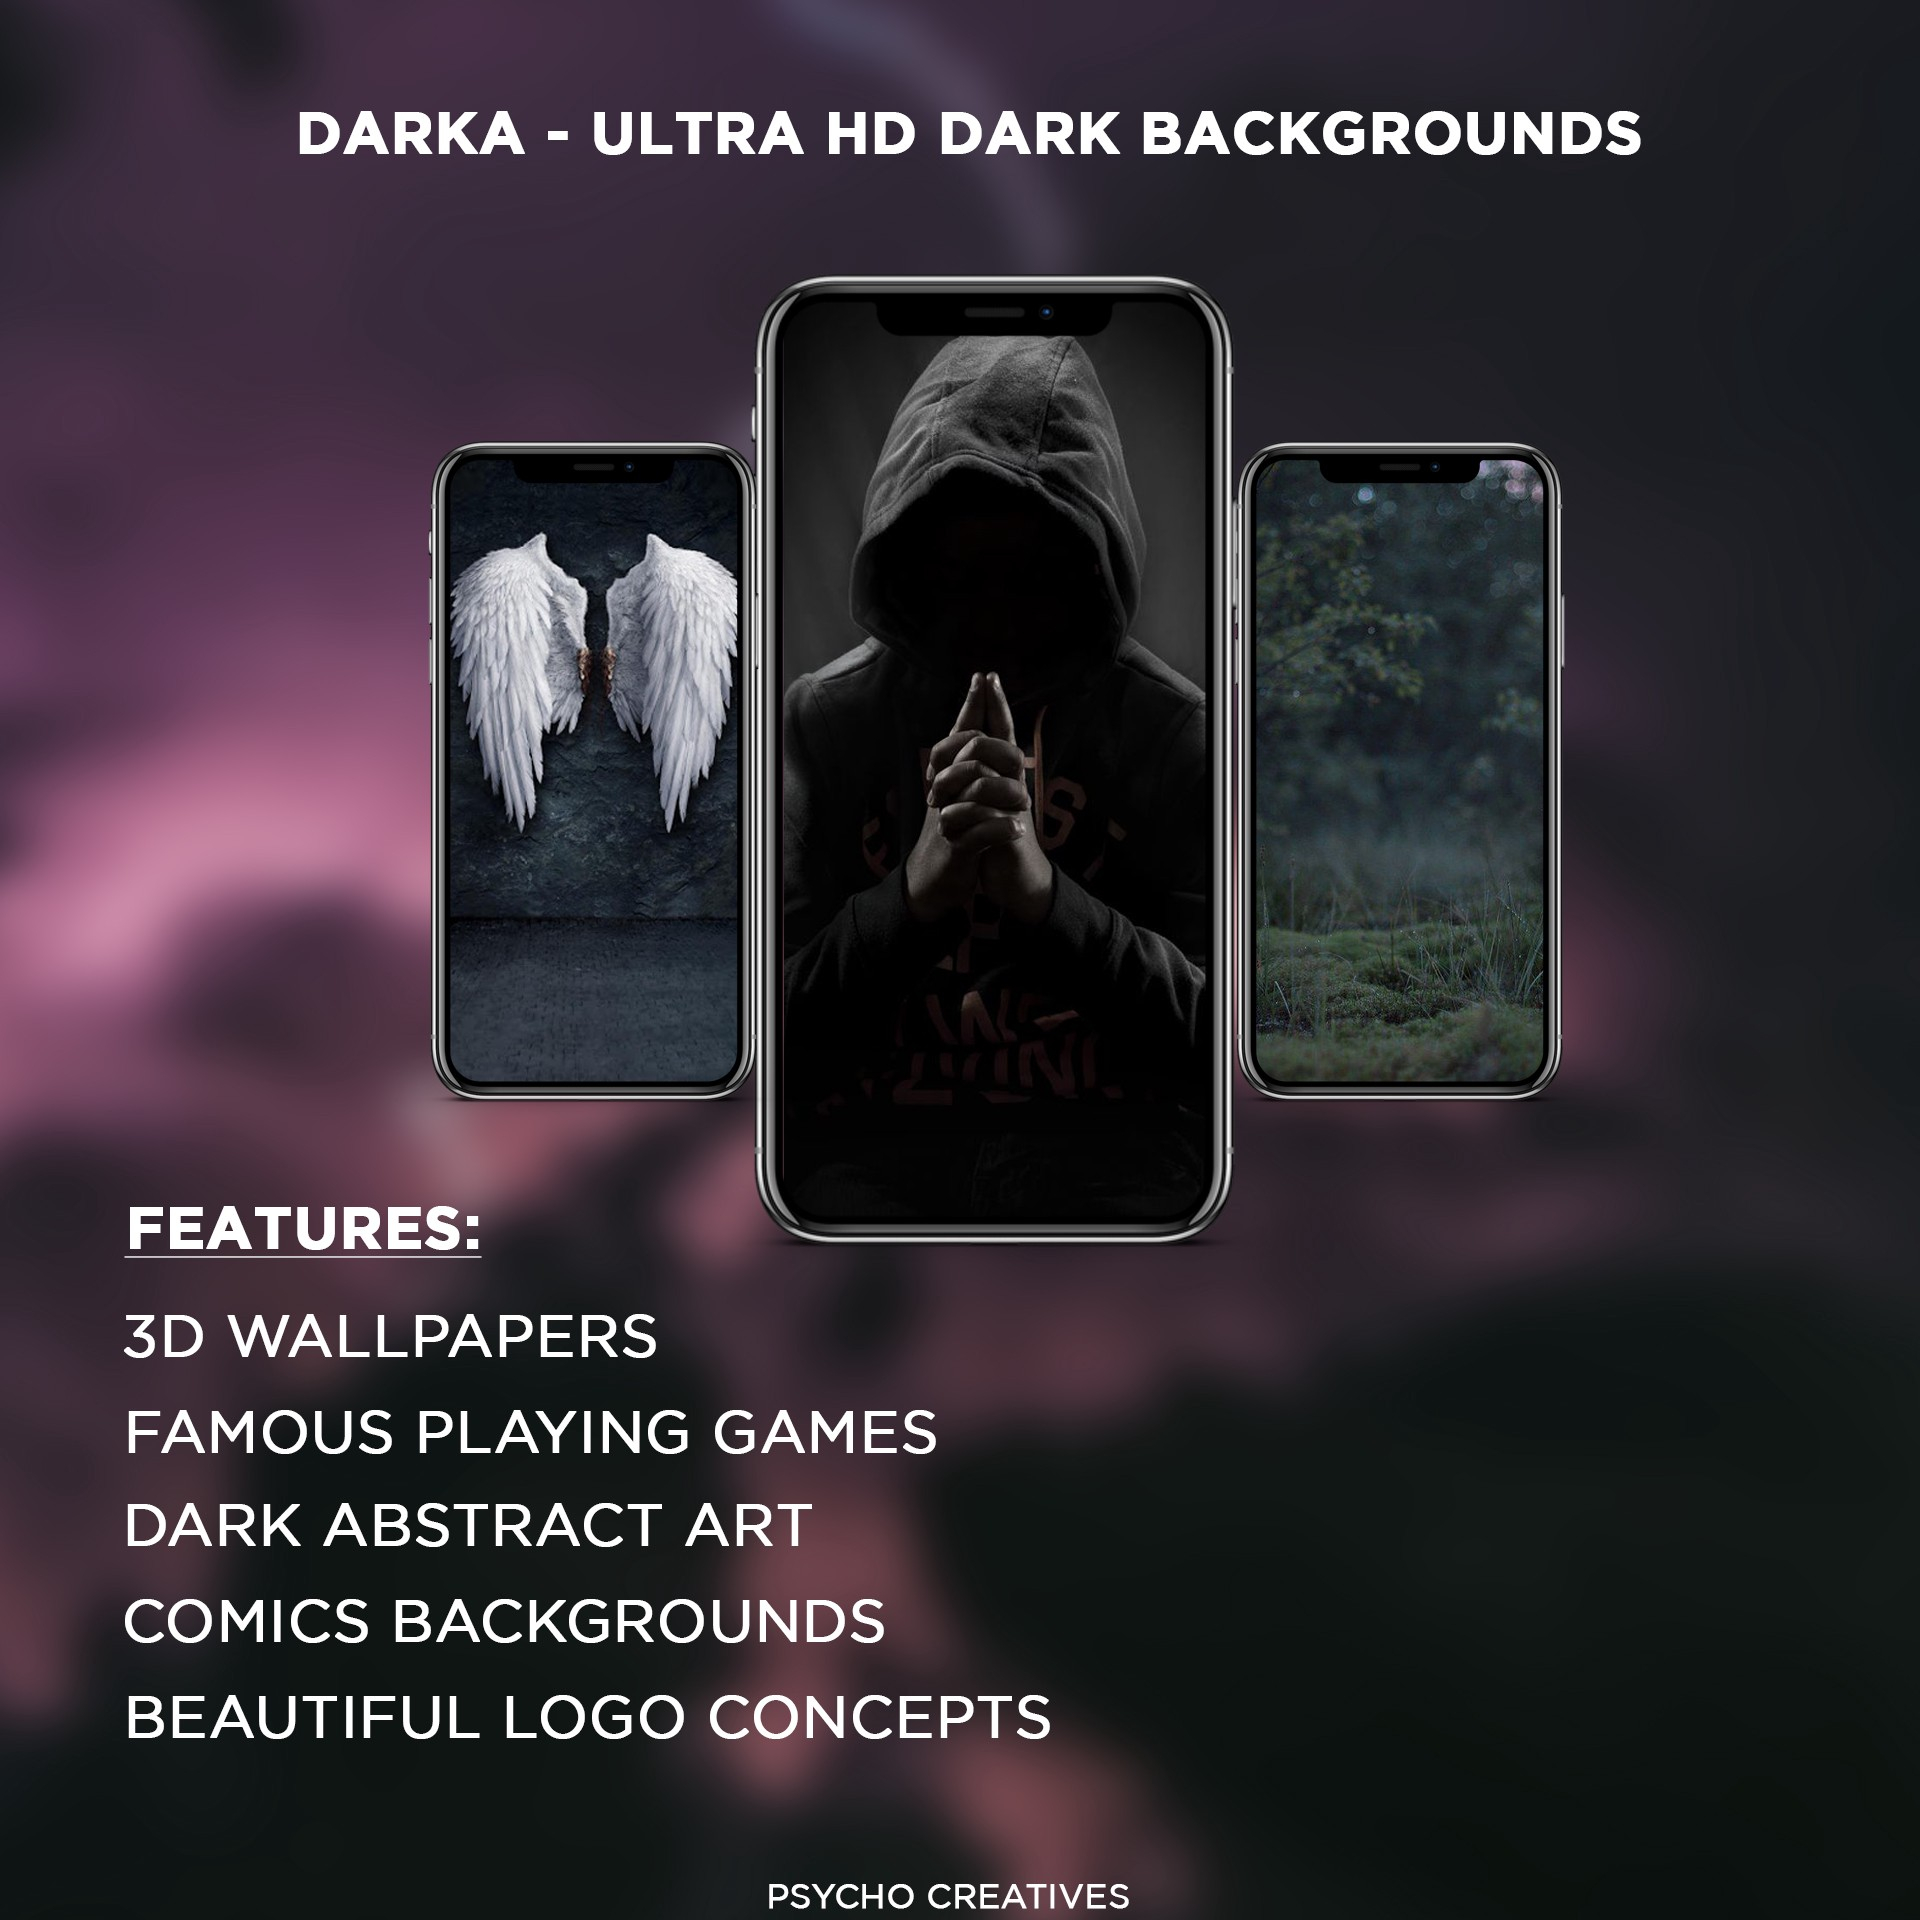 darka ultra hd dark backgrounds 793b4ec645ca